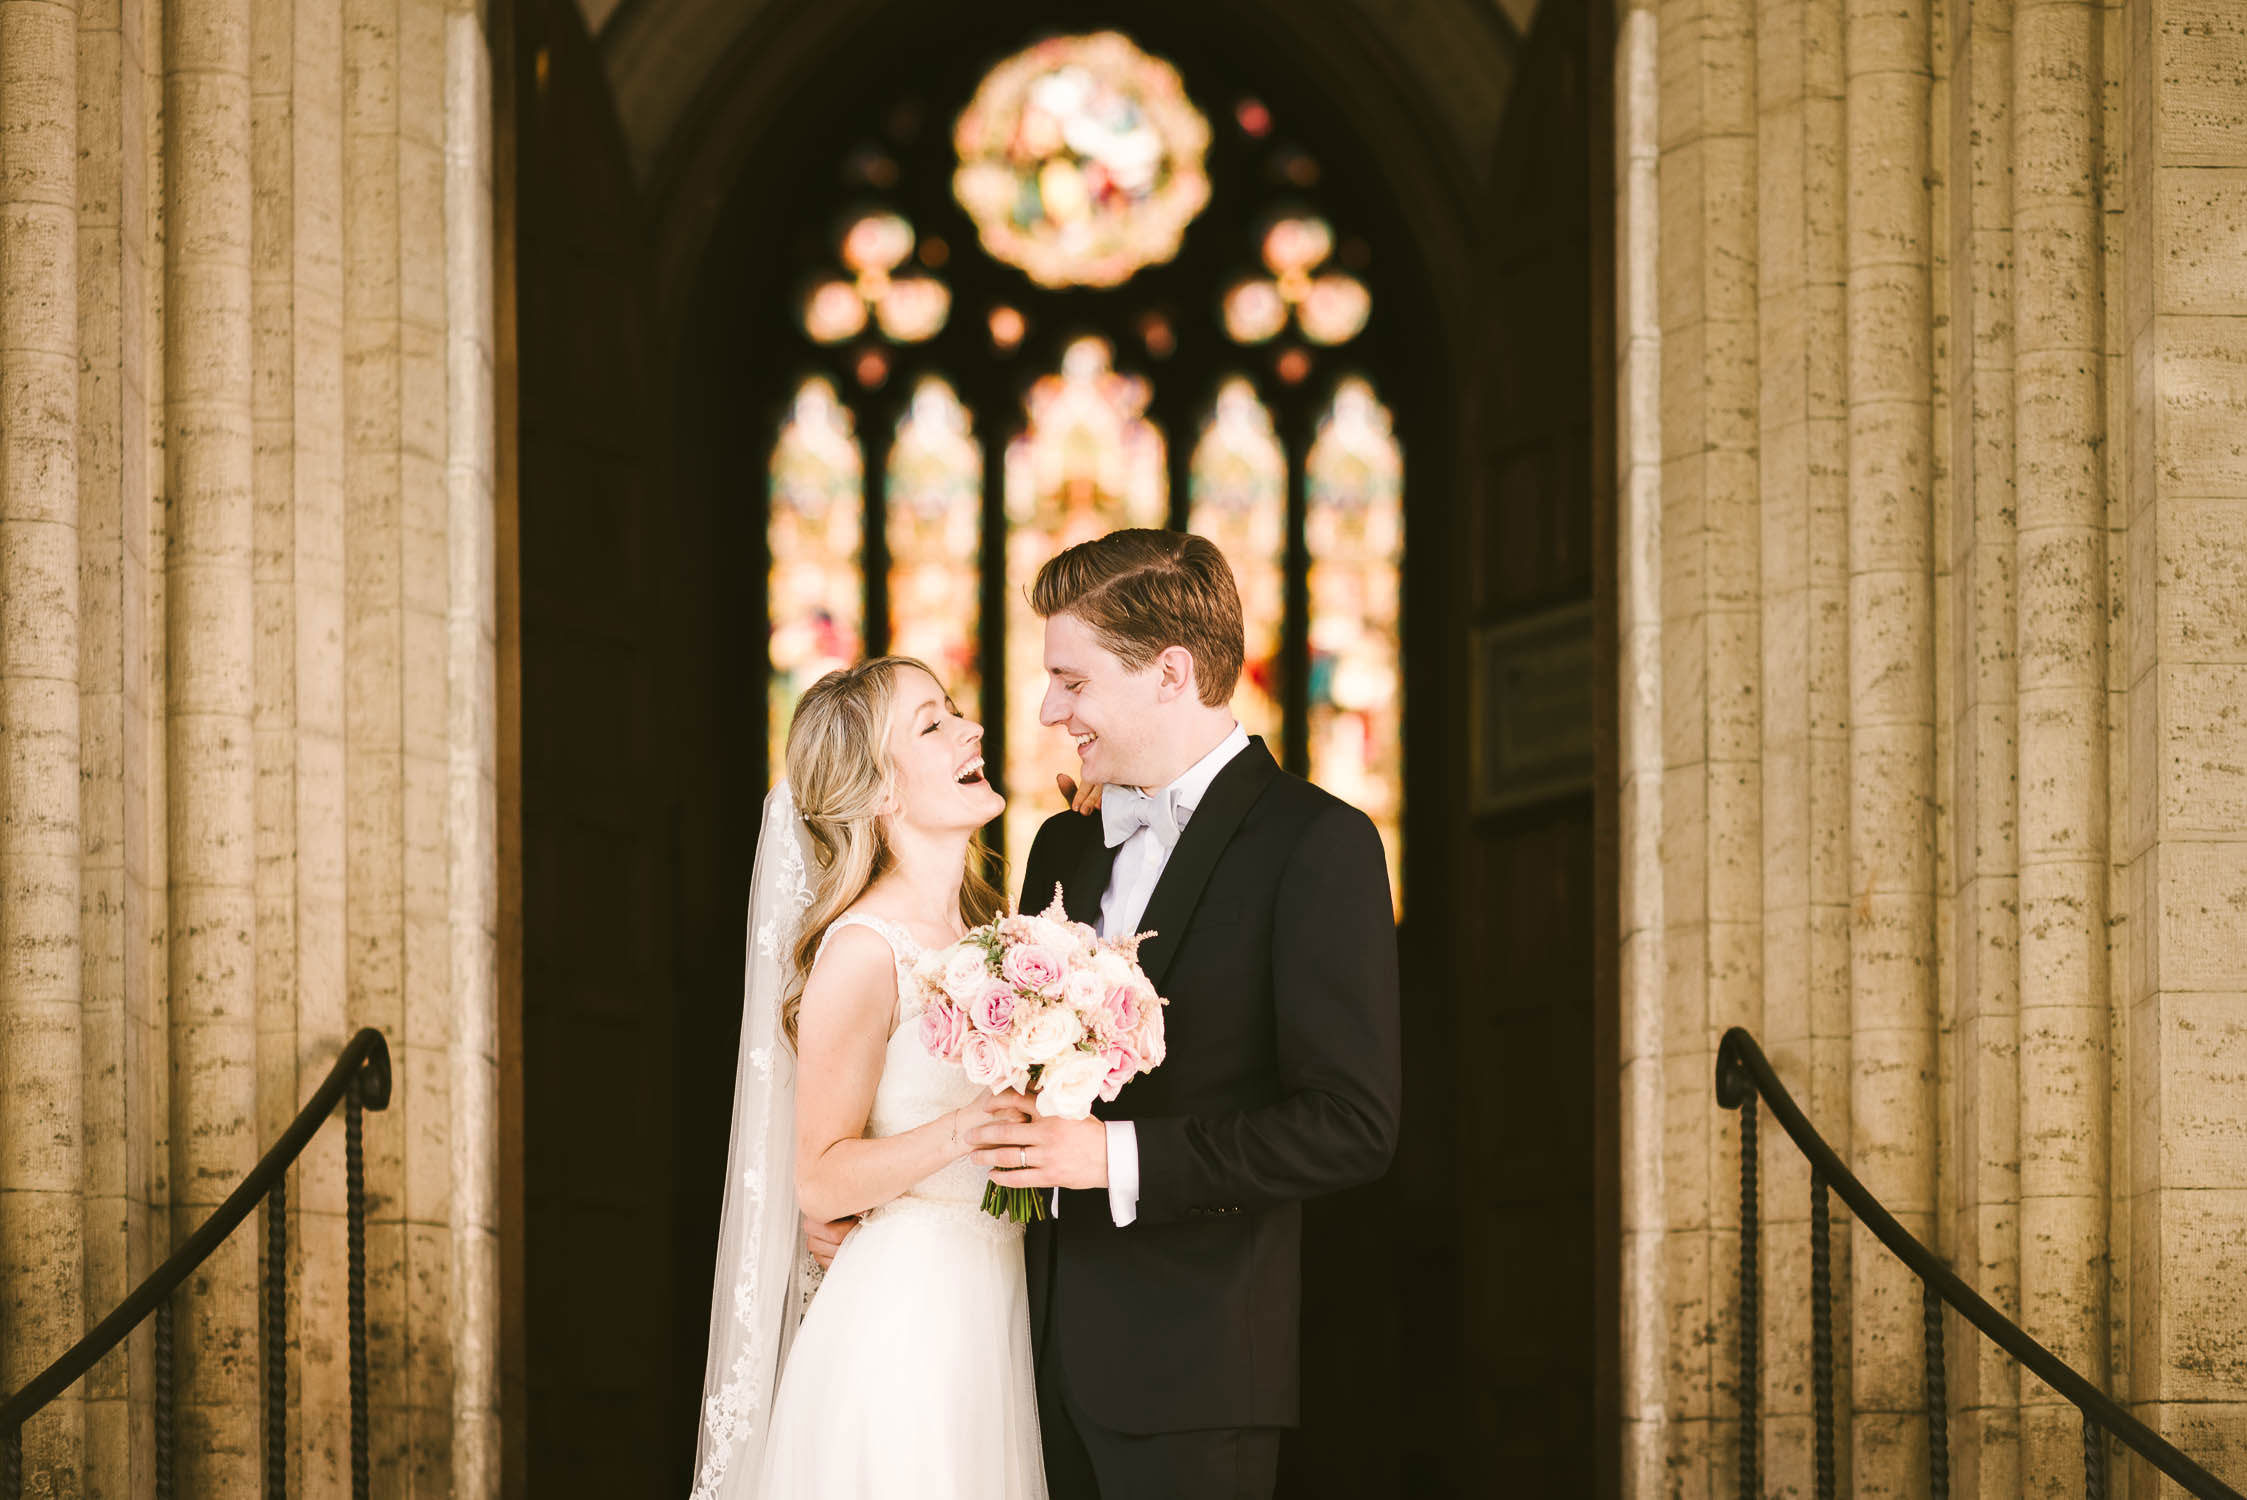 Bride and groom portrait at St. James Church in Florence